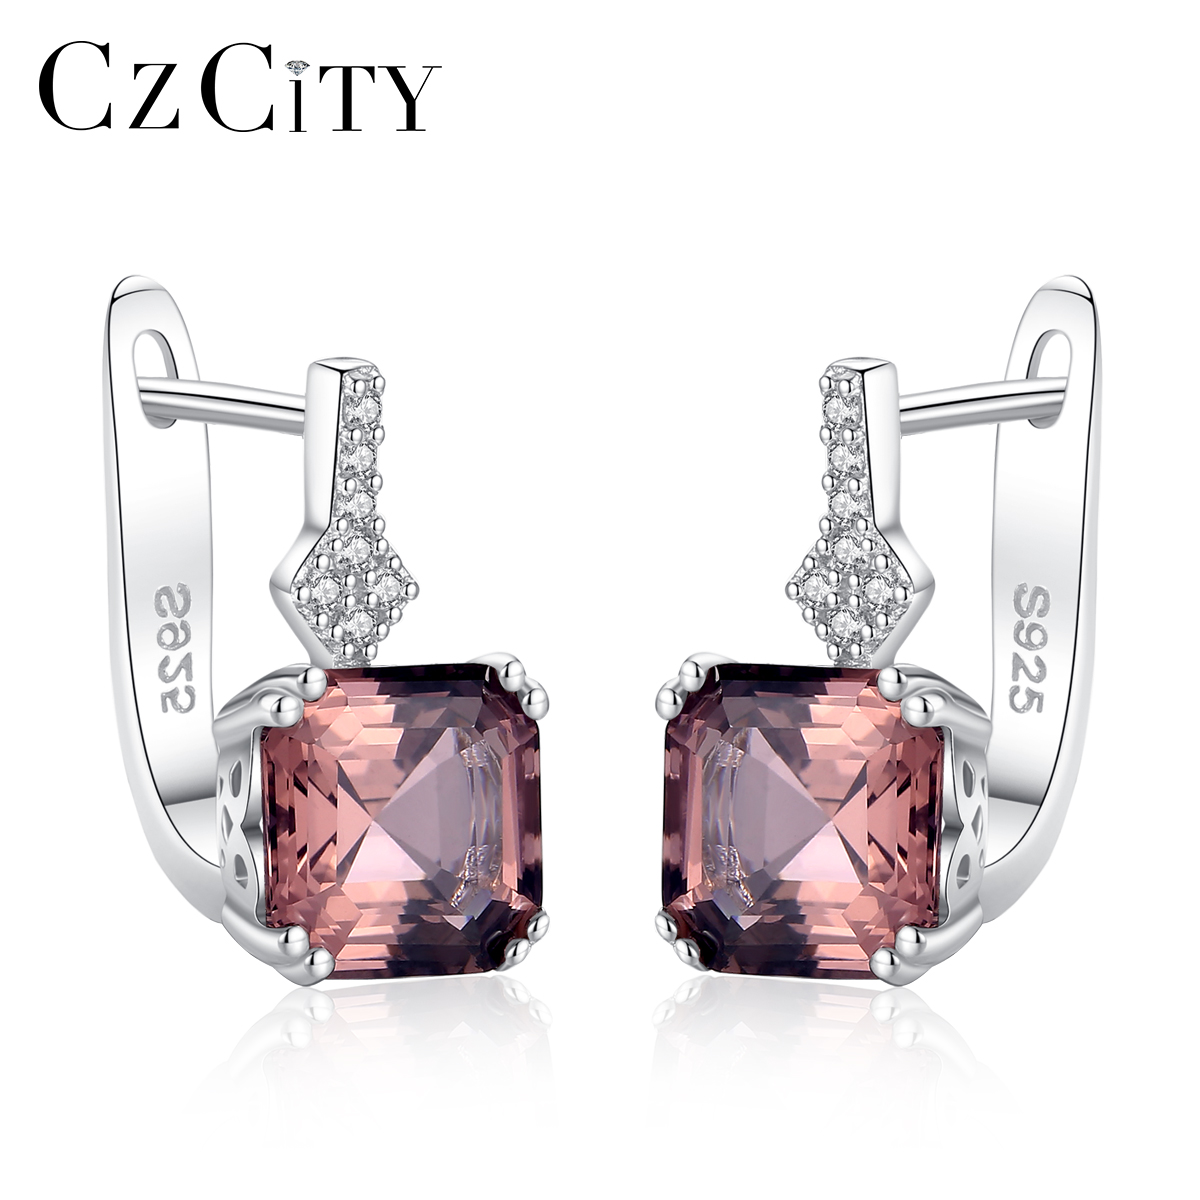 CZCITY New Brand Created Nano Smoke /White Morgan Stone Gemstone Clip On Earrings For Women Luxury 925 Silver Cuff Earring Gifts